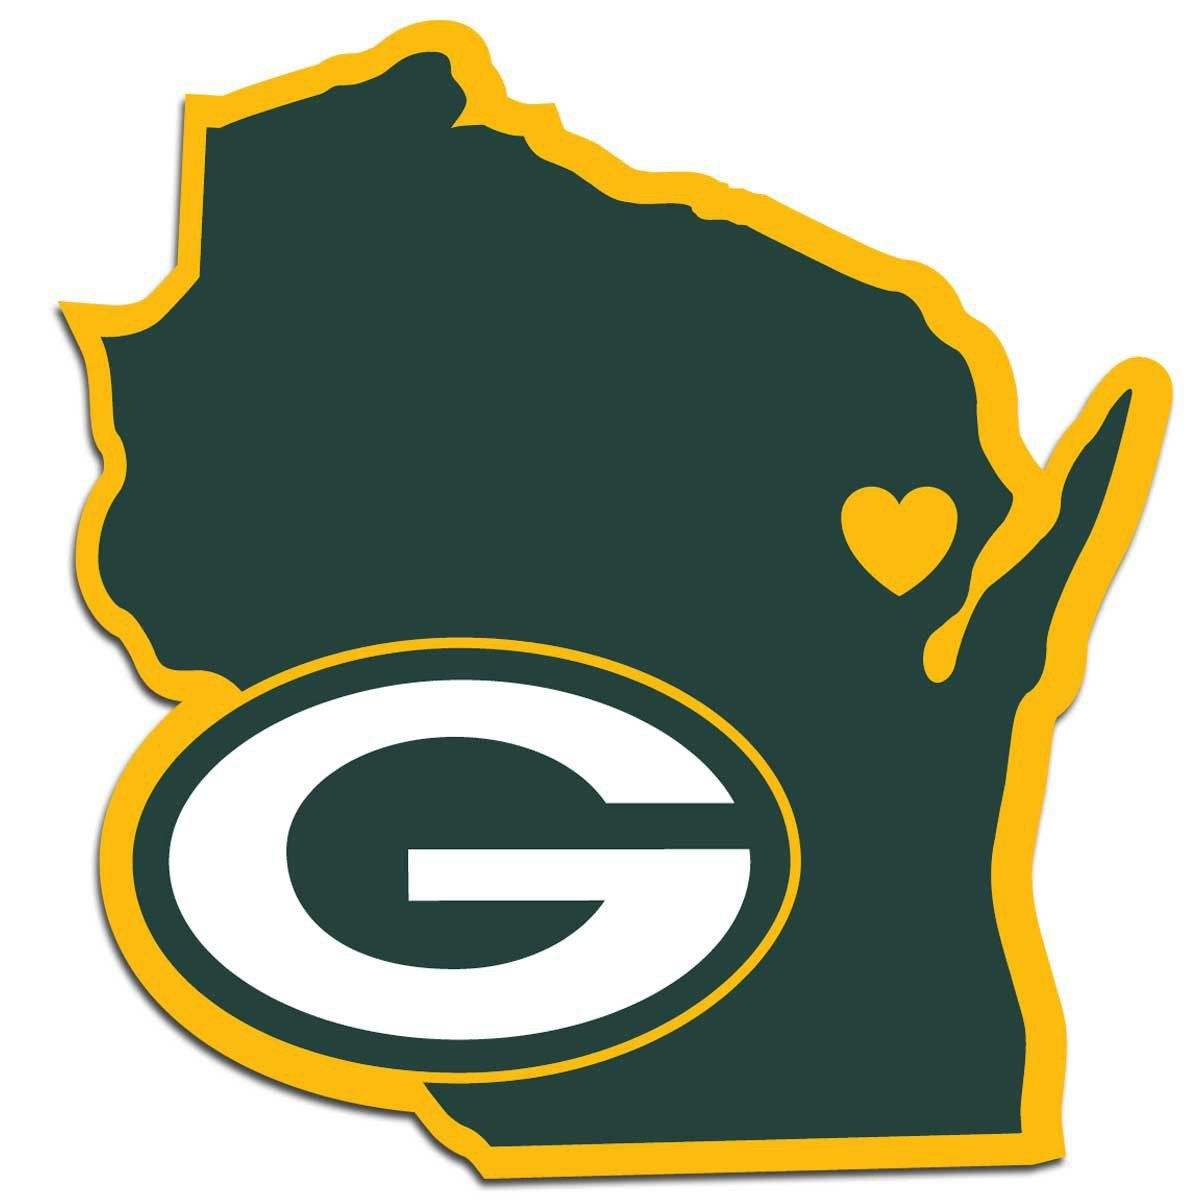 Green Bay Packers Decal Home State Pride Green Bay Packers Logo Team Decal Green Bay Packers